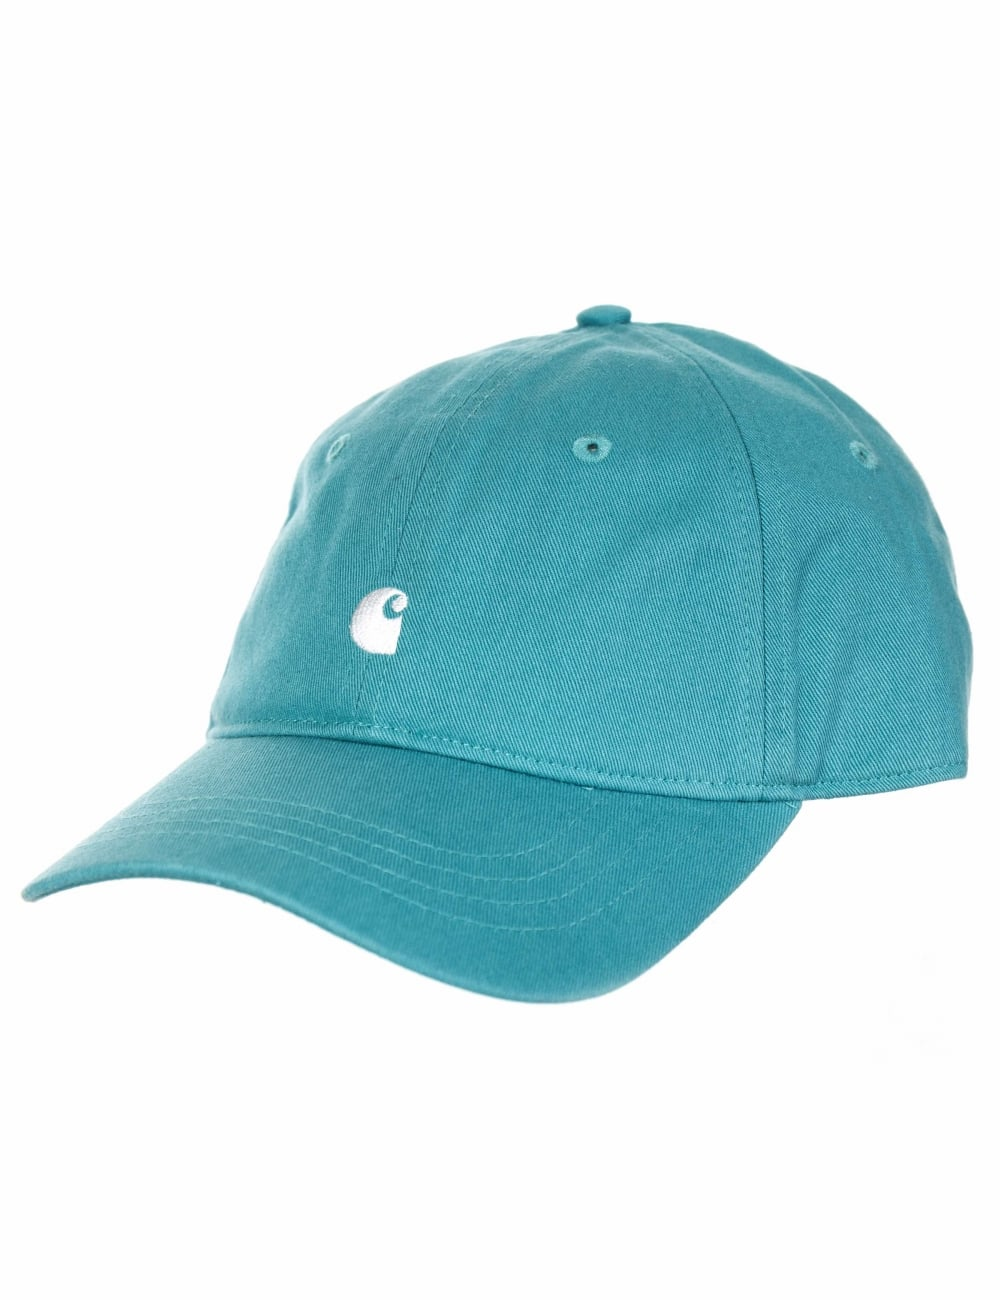 af91b3ba7e4 Carhartt WIP Madison Logo Cap - Soft Teal - Accessories from Fat ...